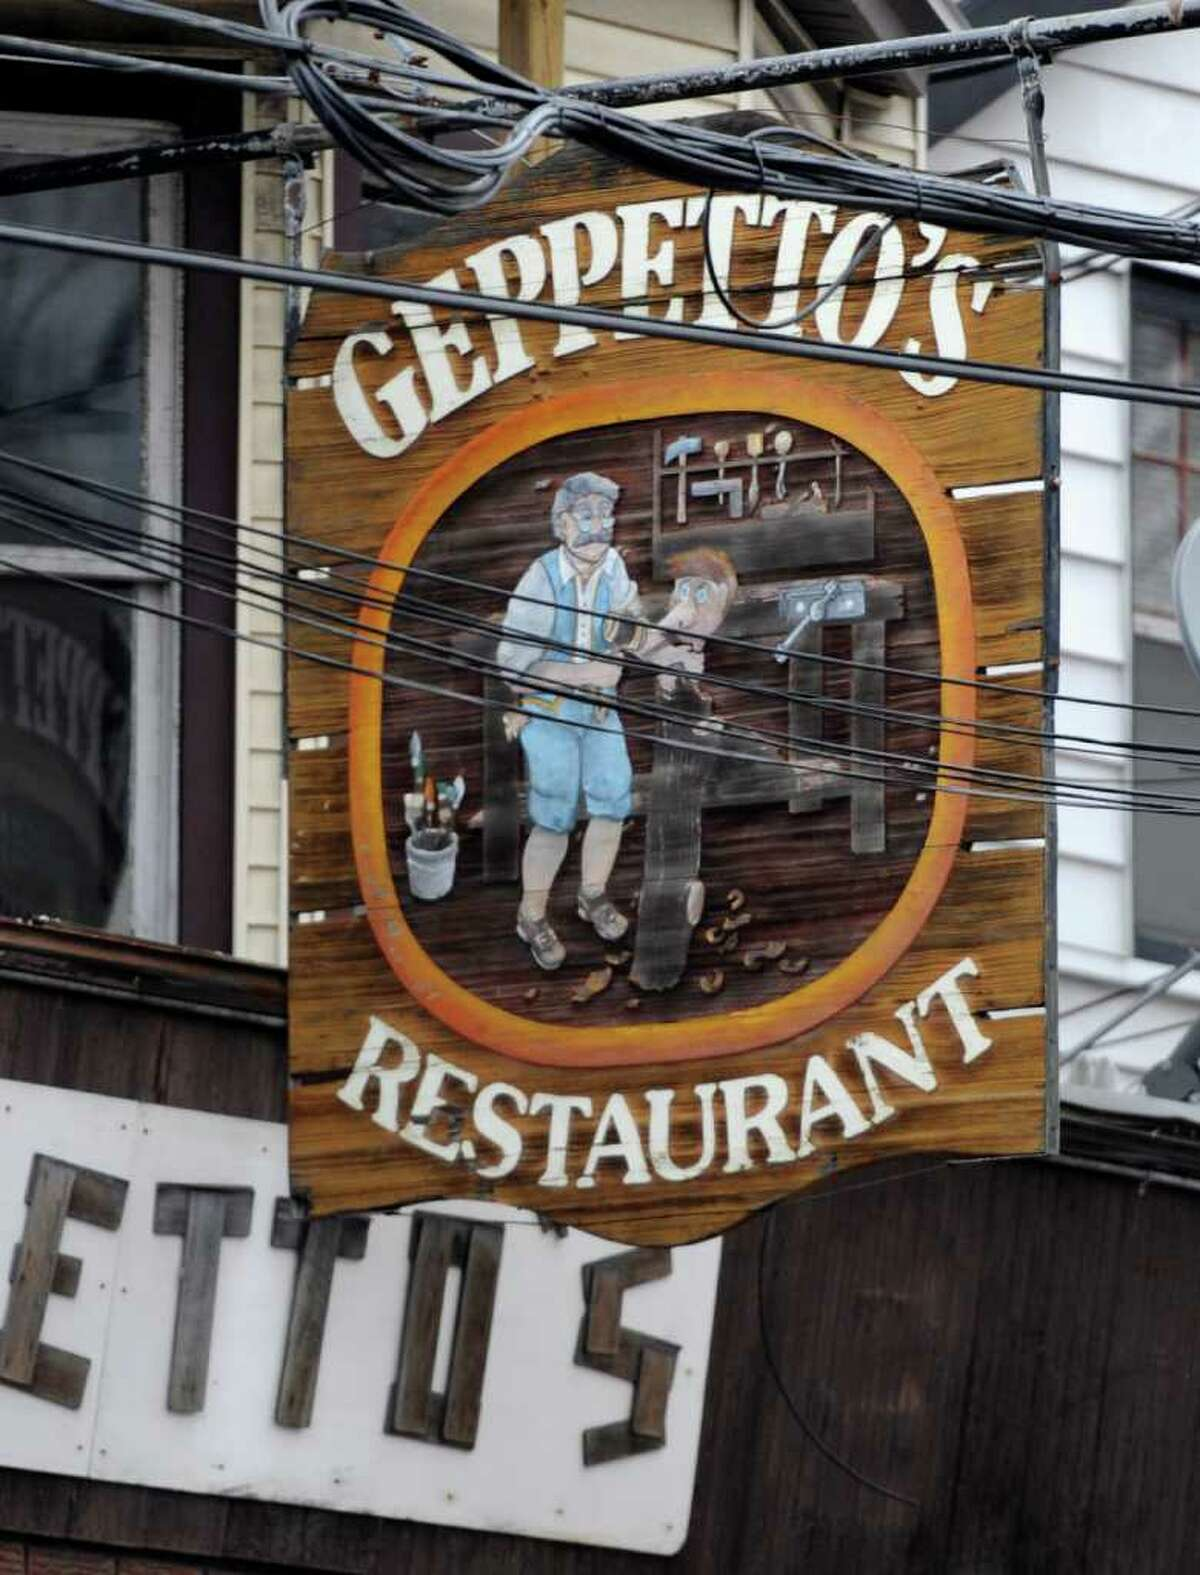 Geppetto's Restaurant on Nott Street in Schenectady, N.Y., on Feb. 15, 2012. Three bartenders were arrested last week for allegedly serving alcohol to minors. (Skip Dickstein / Times Union)